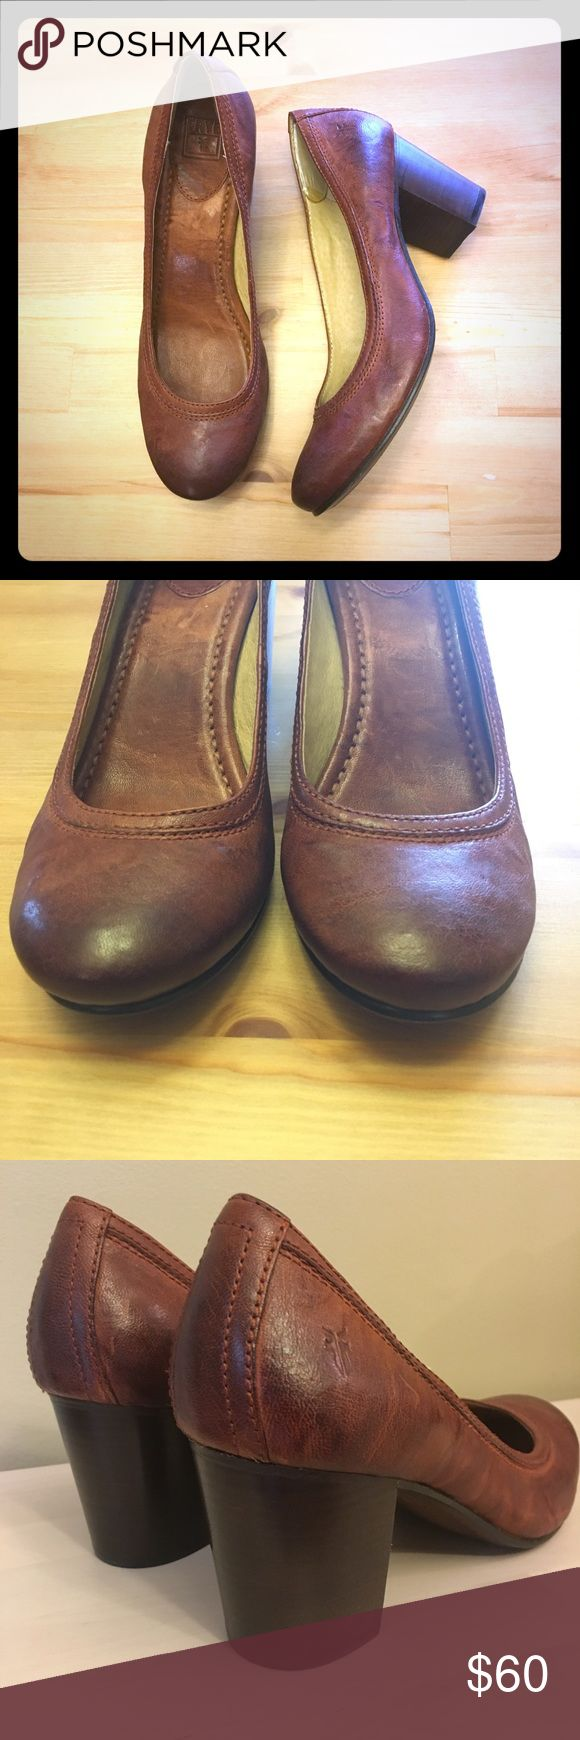 """NWOB Frye 'Carson' Pump These Frye pumps retail over $200- I've not worn them outside the house! They are antiqued/polished dark brown leather. 3"""" wooden block heel. I put heel grippers in them as they were too big for me, see photo. Could be easily removed. Frye Shoes Heels"""